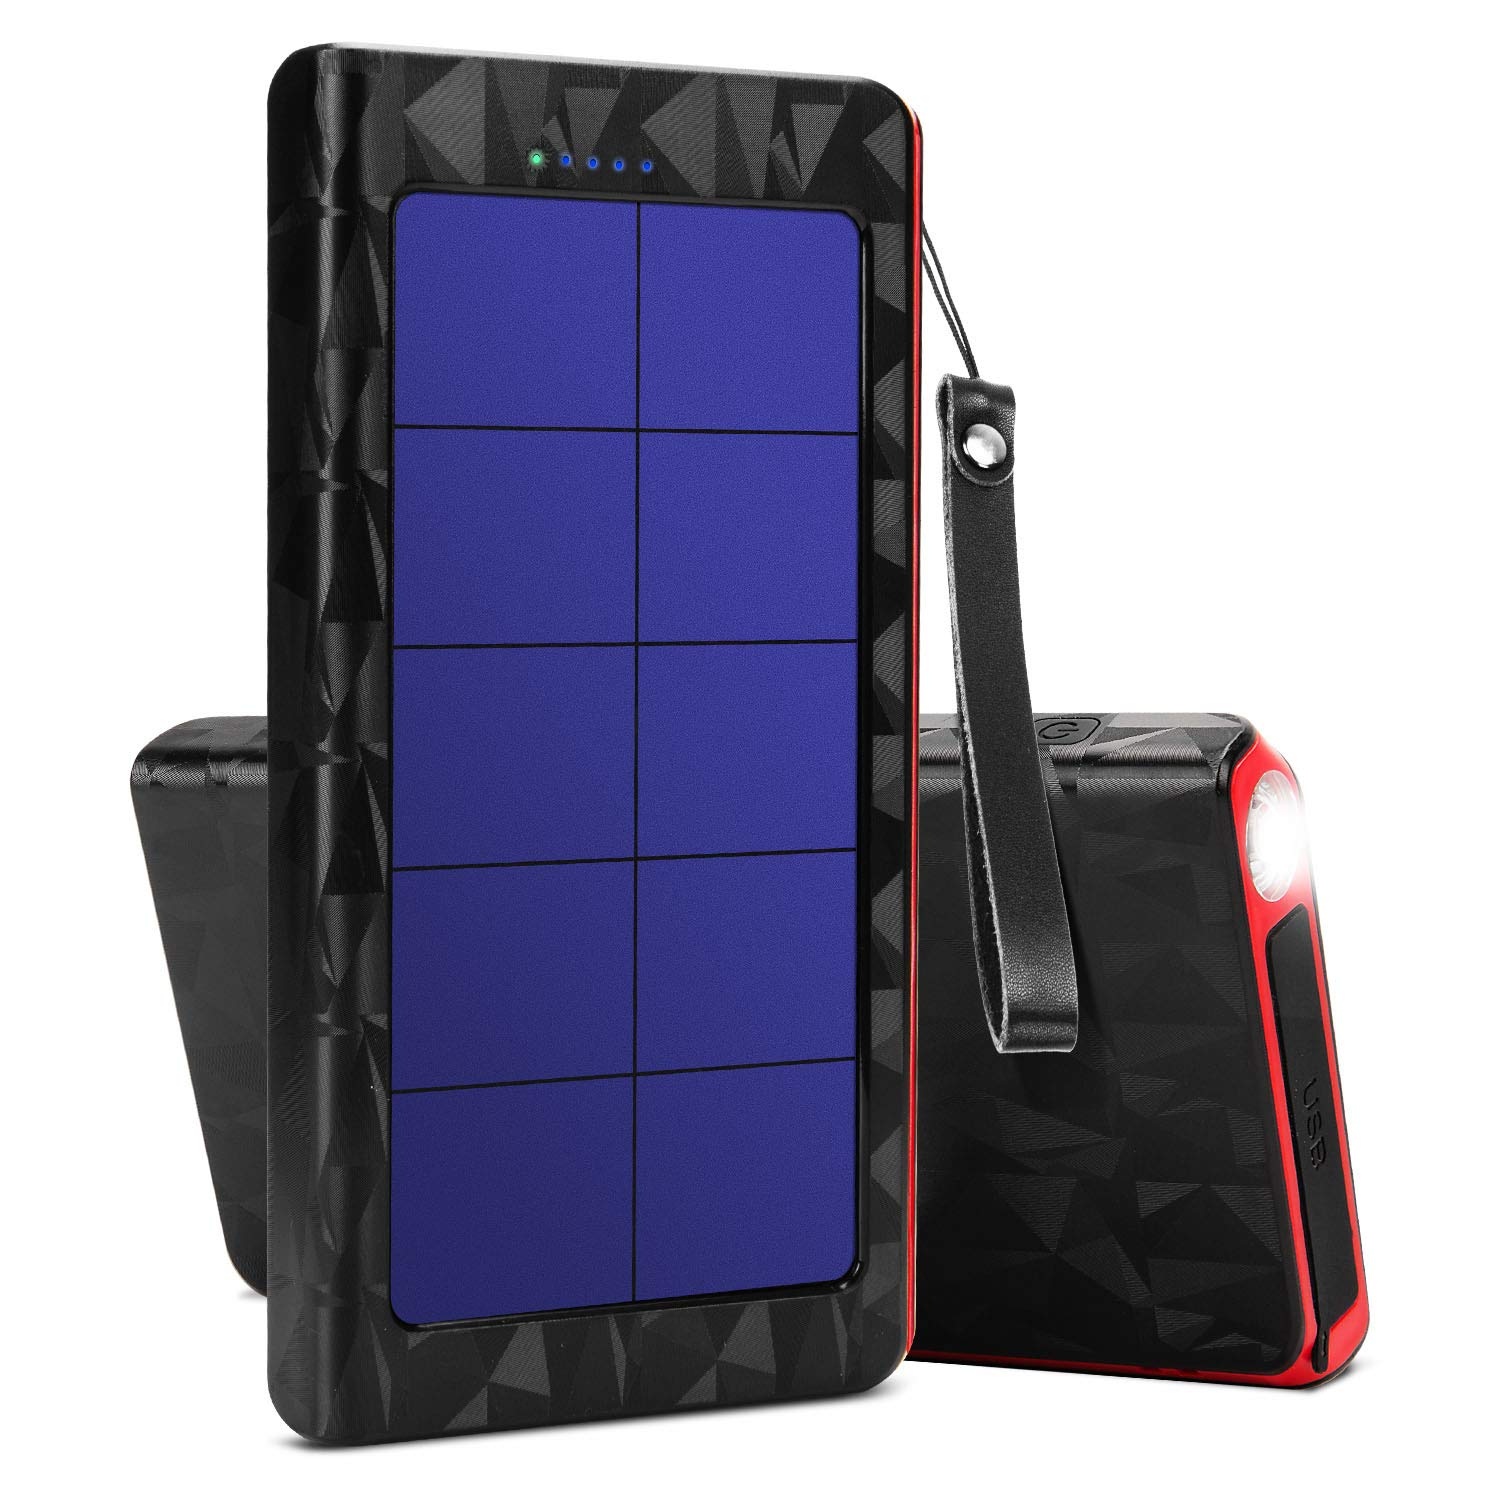 X-DNENG Solar Charger Power Bank 20000mAh High Efficiency Battery Backup with Dual USB & Type C Port for Backpacking Camping Hiking Tavel Outdoor Activities